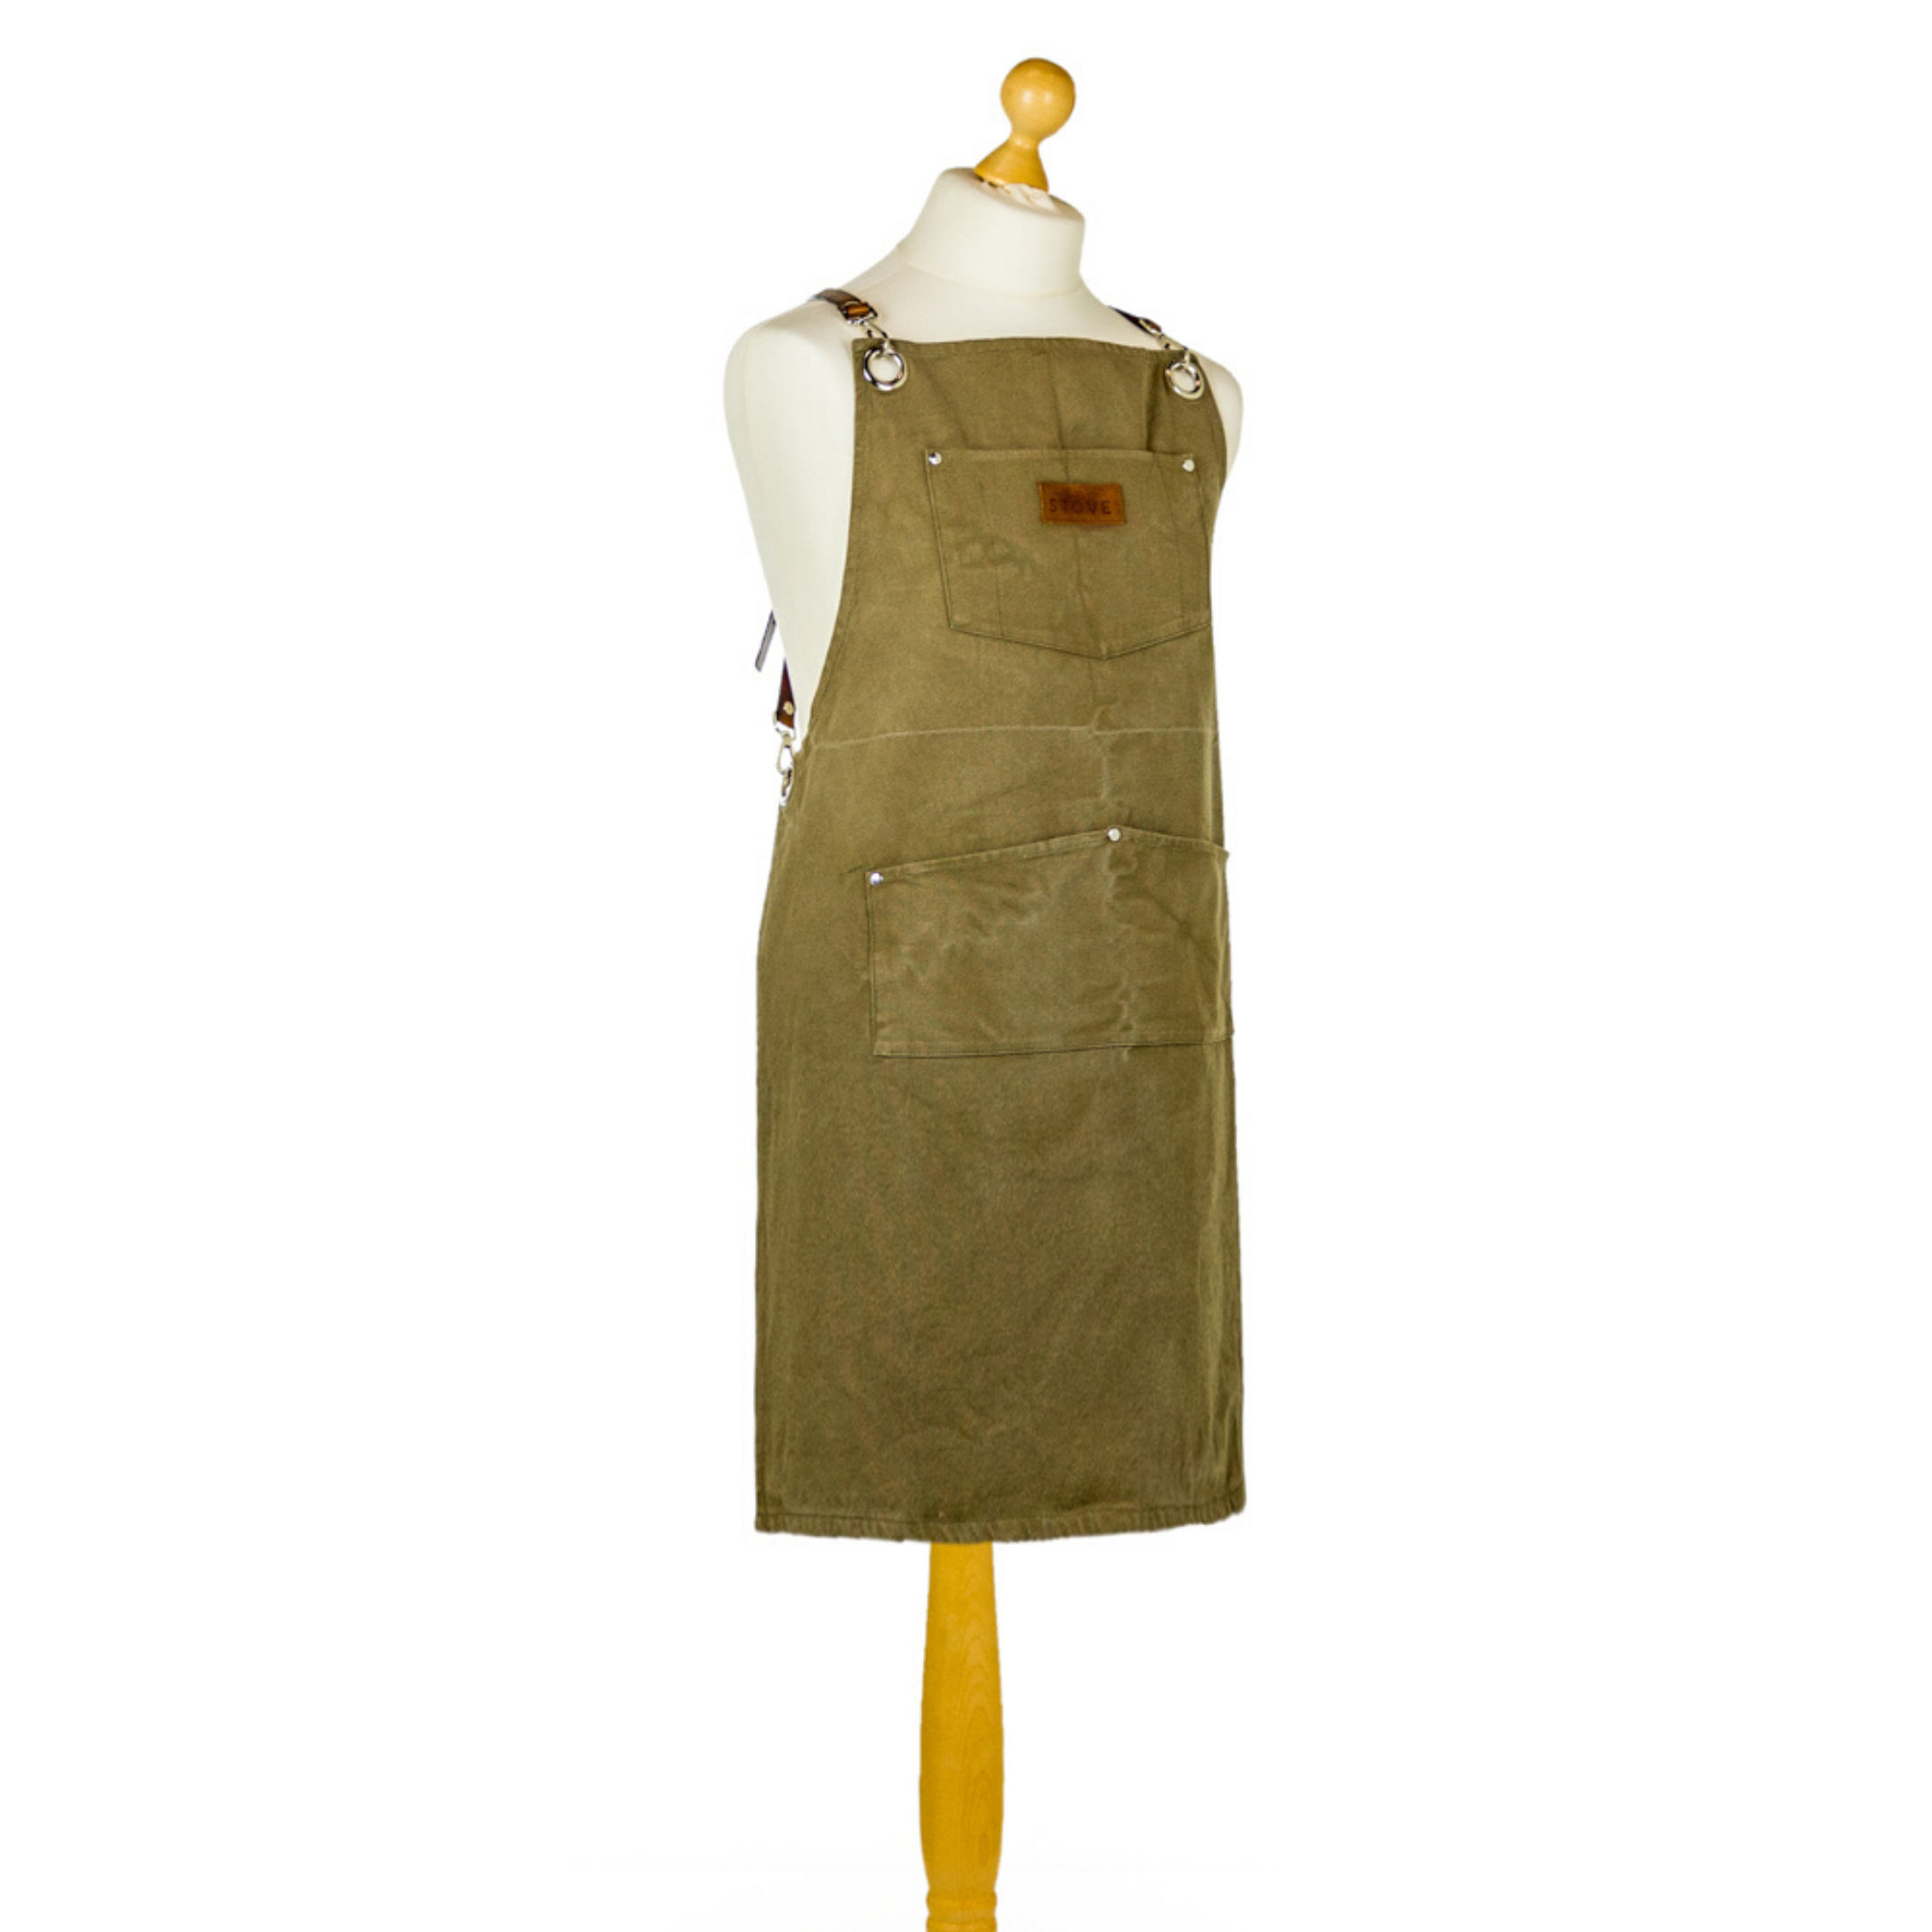 "Artisan Canvas ""Slave to the Stove"" Apron with Leather Straps - Wild Atlantic Living"